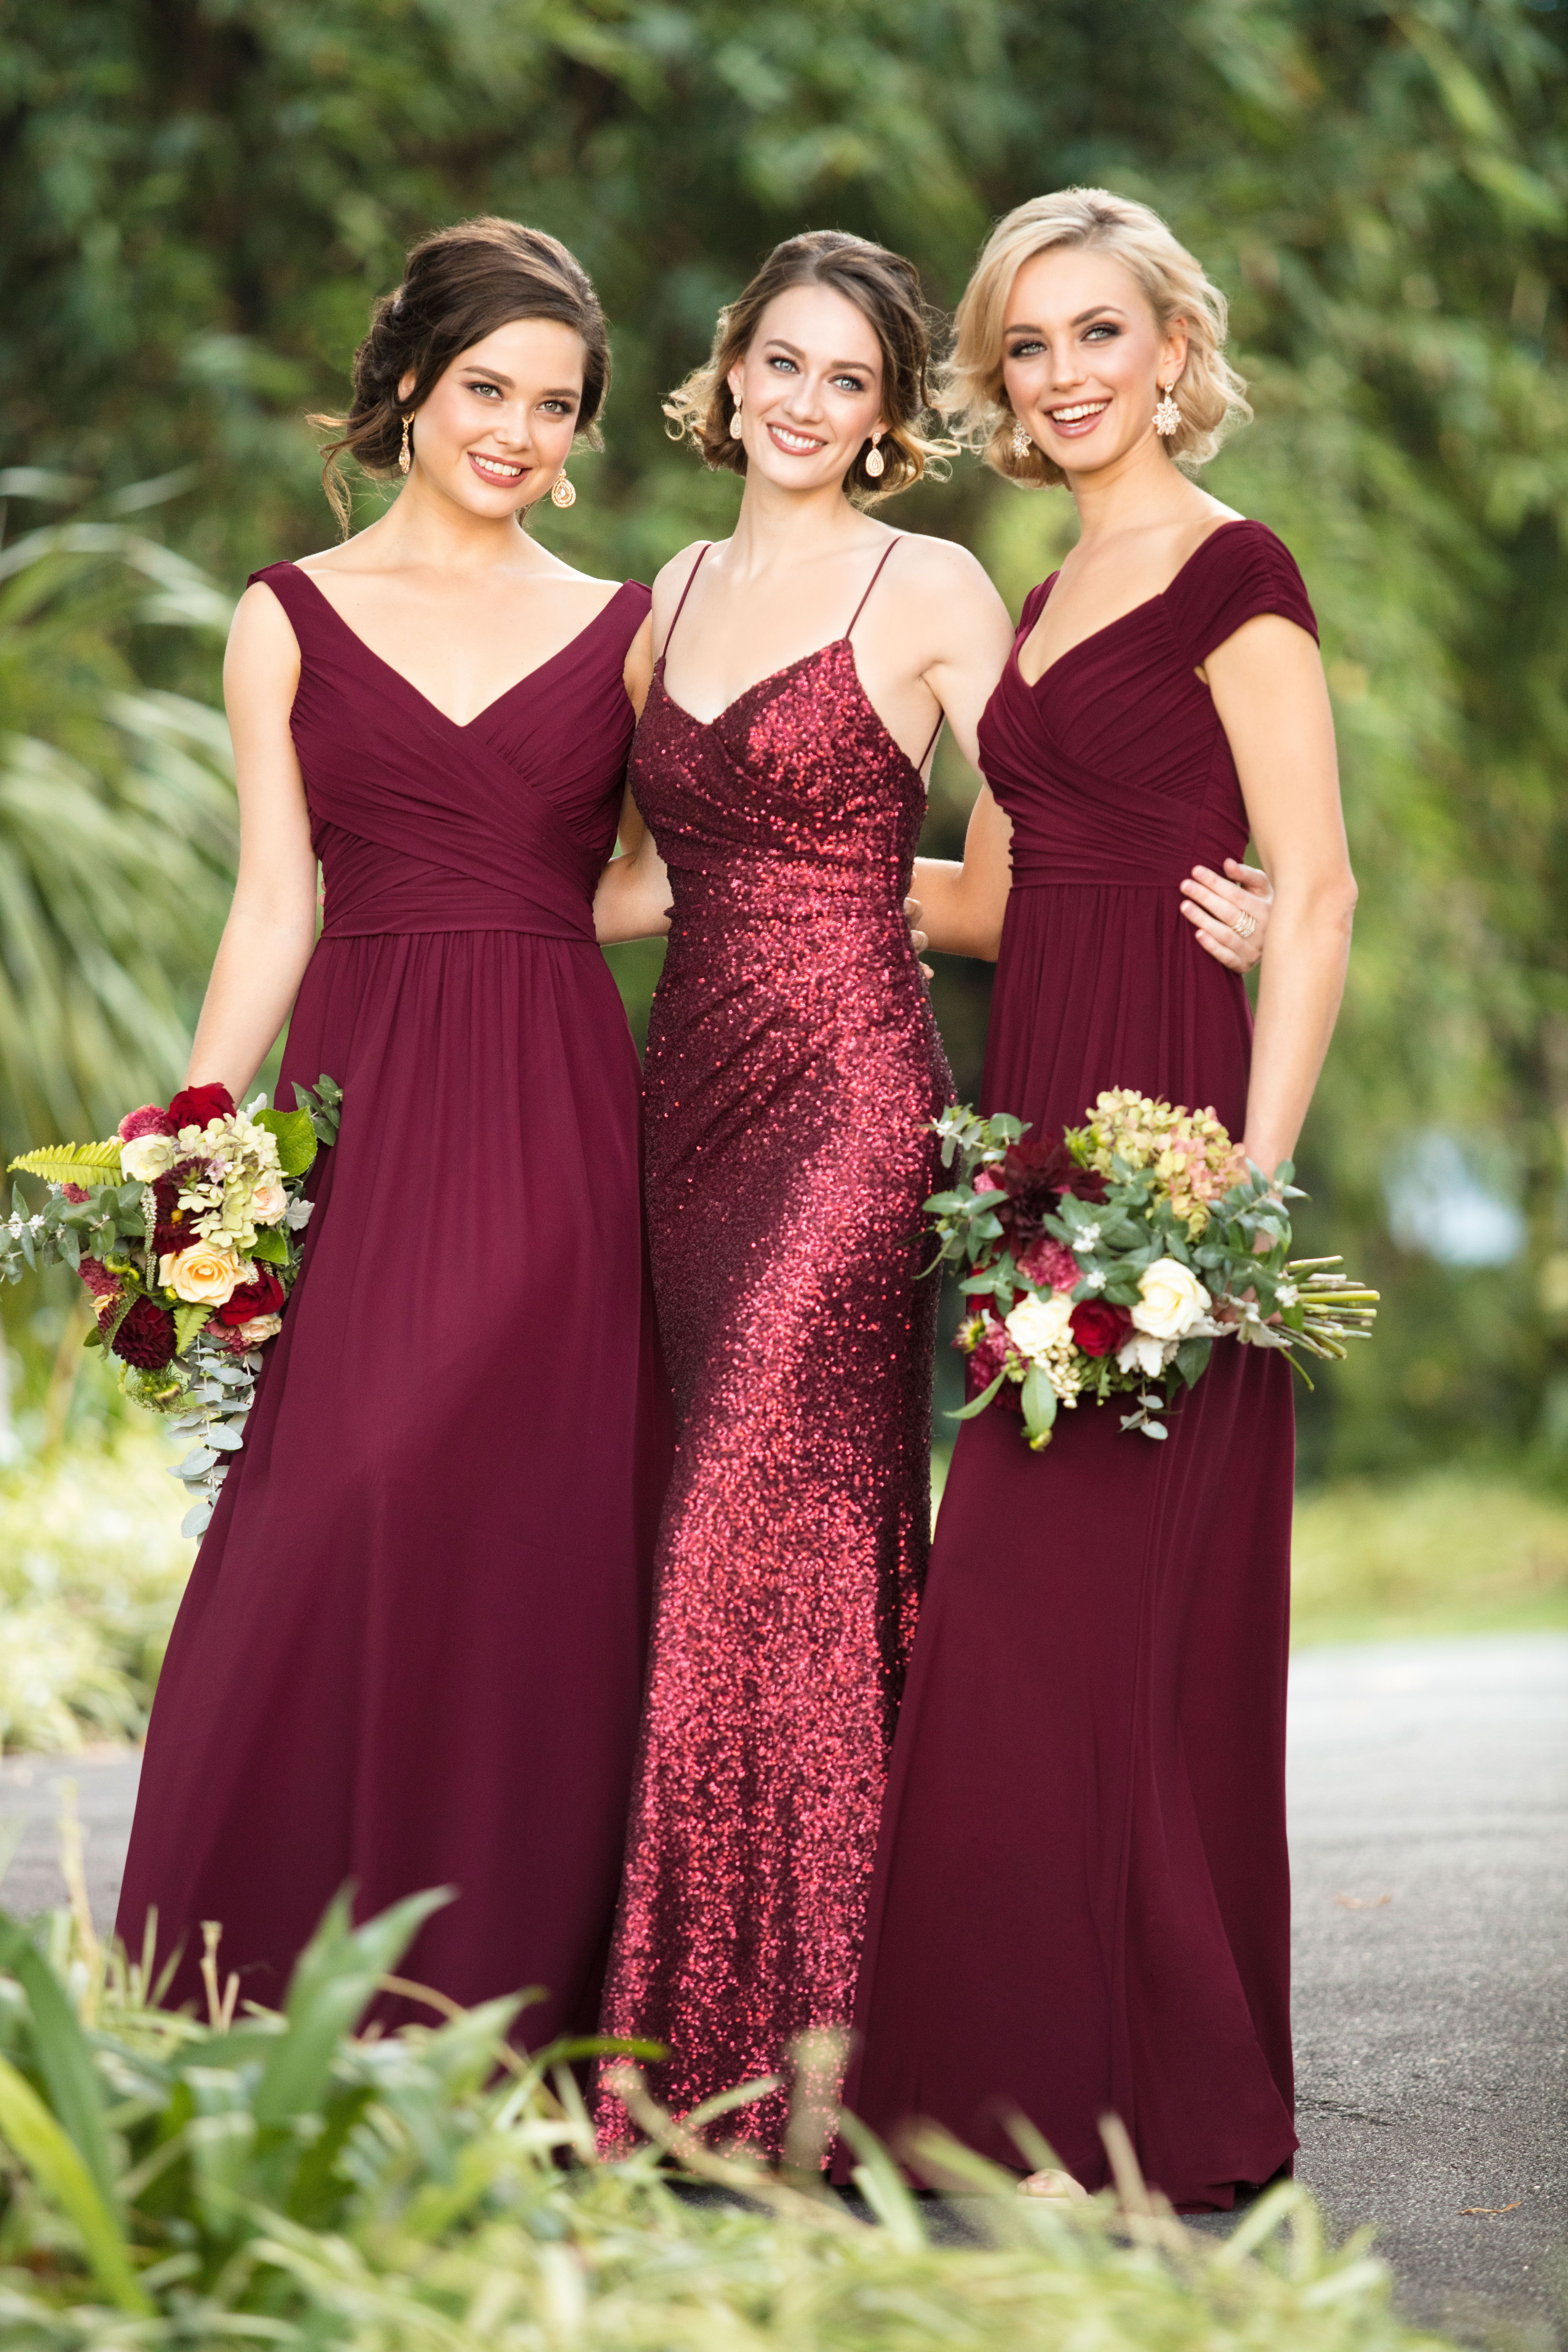 Trends We Love Mixed Berry Bridal Parties Bridesmaid